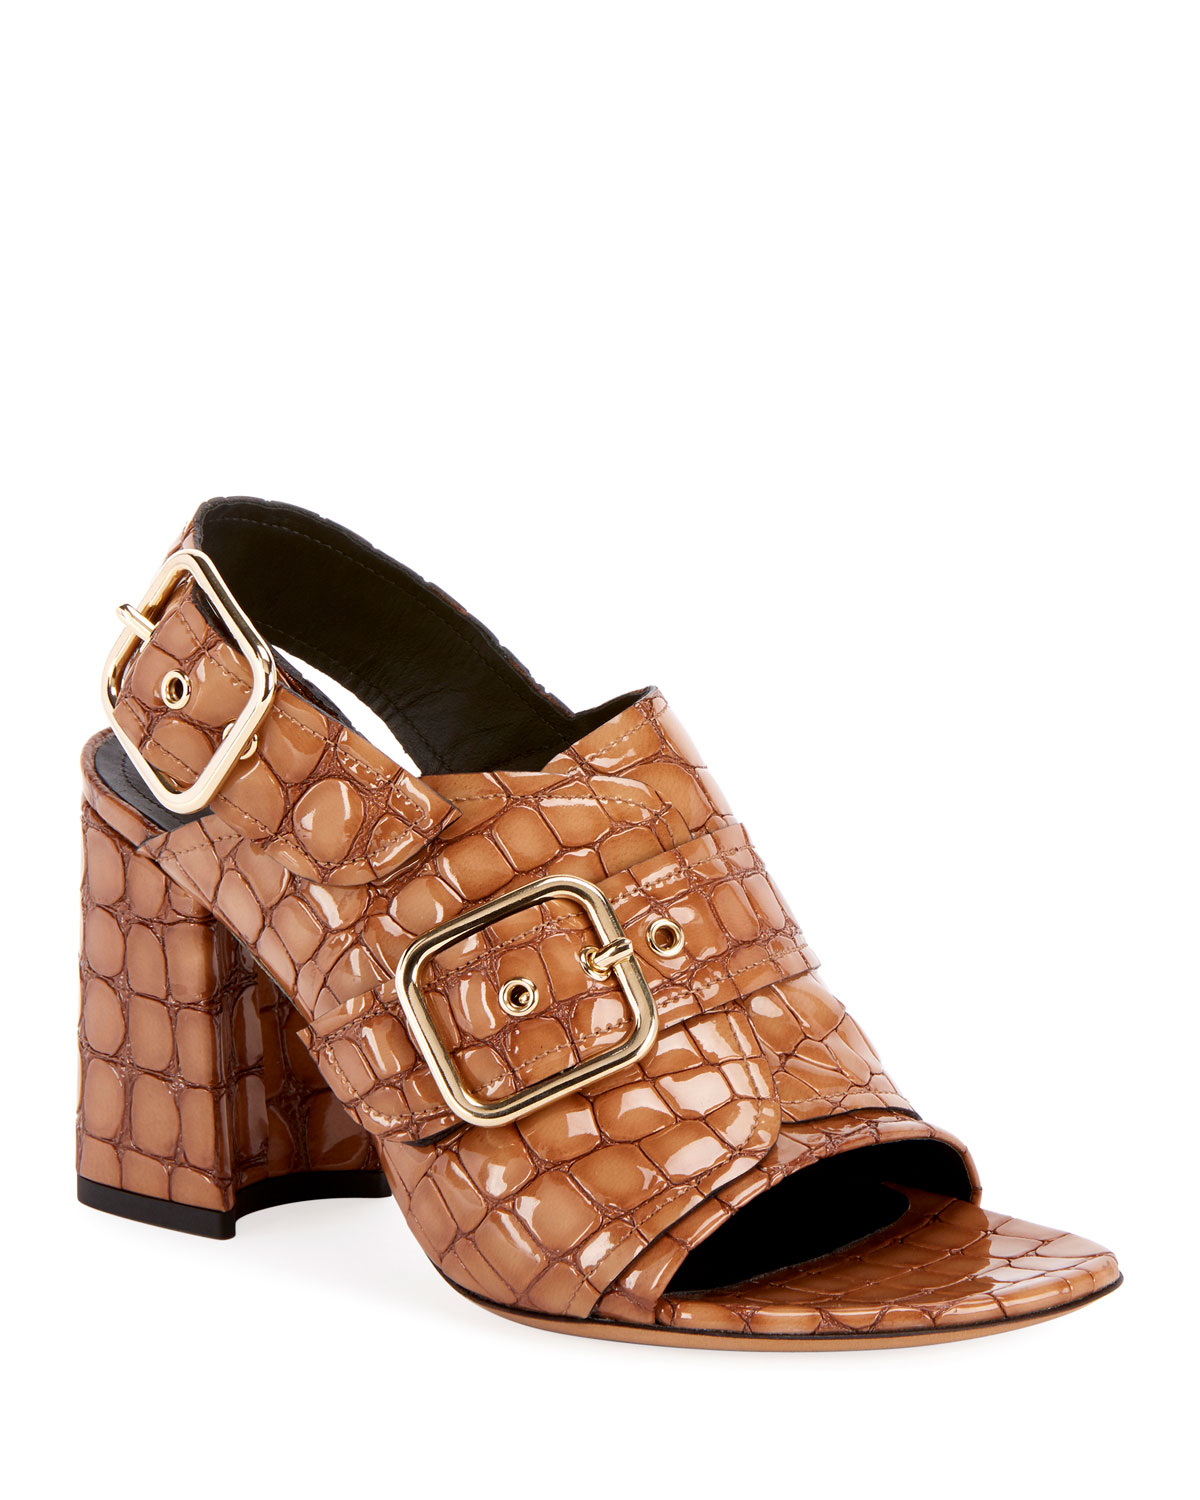 Shiny Alligator-Print Sandals in Beige